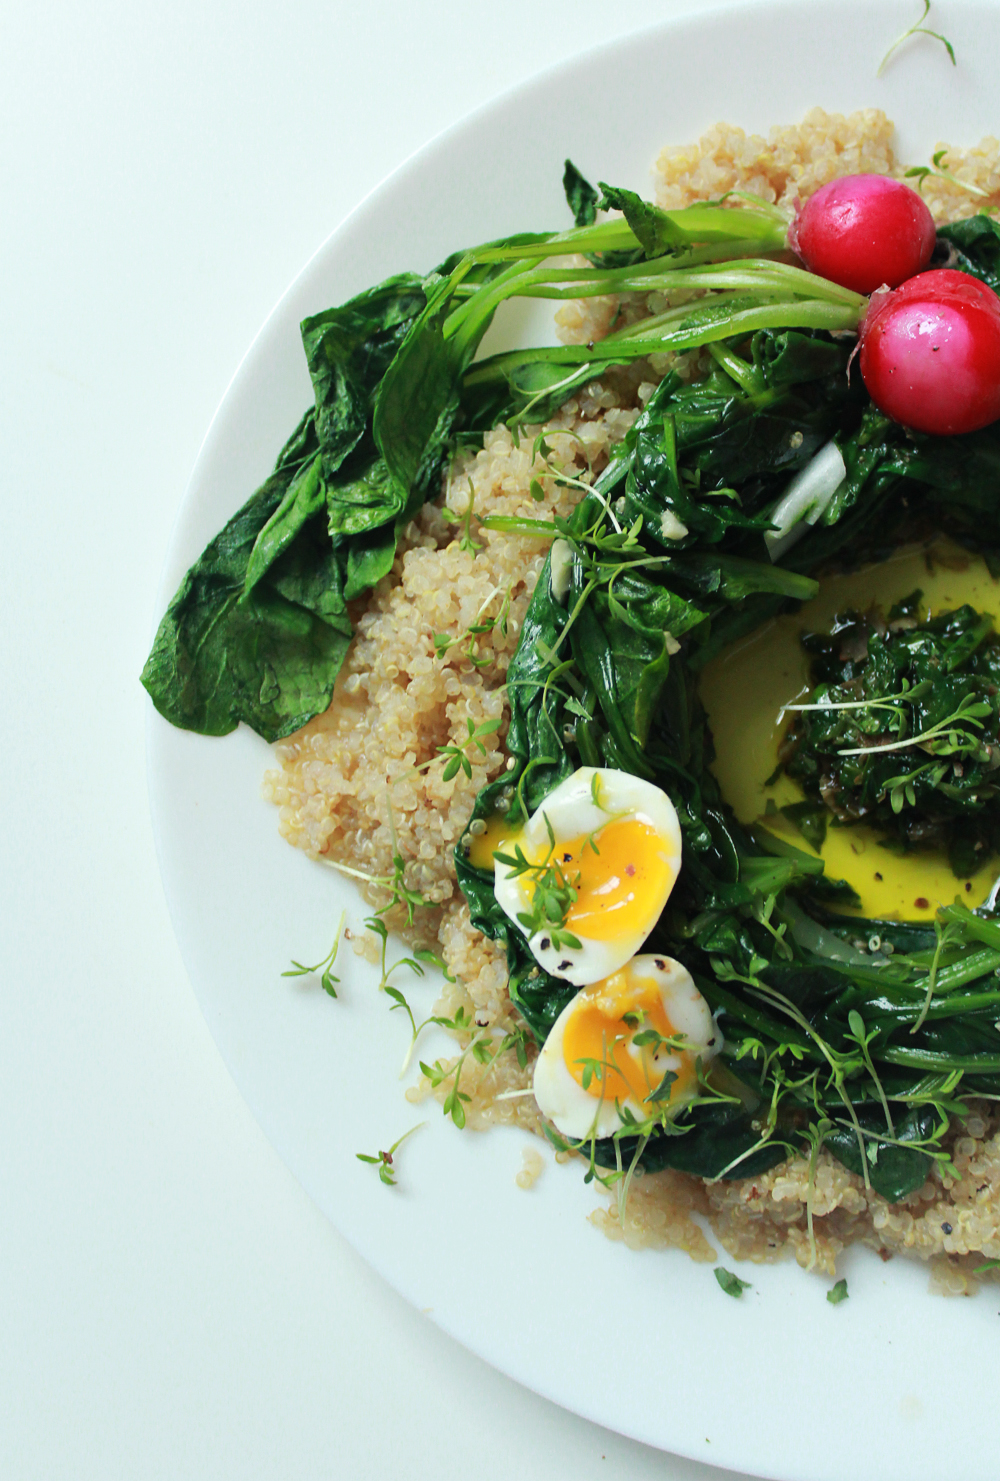 Quinoa & bulgur salad with spinach, chards, radishes, soft-boiled eggs and capper pesto (via inwhirlofinspiration.com) 3